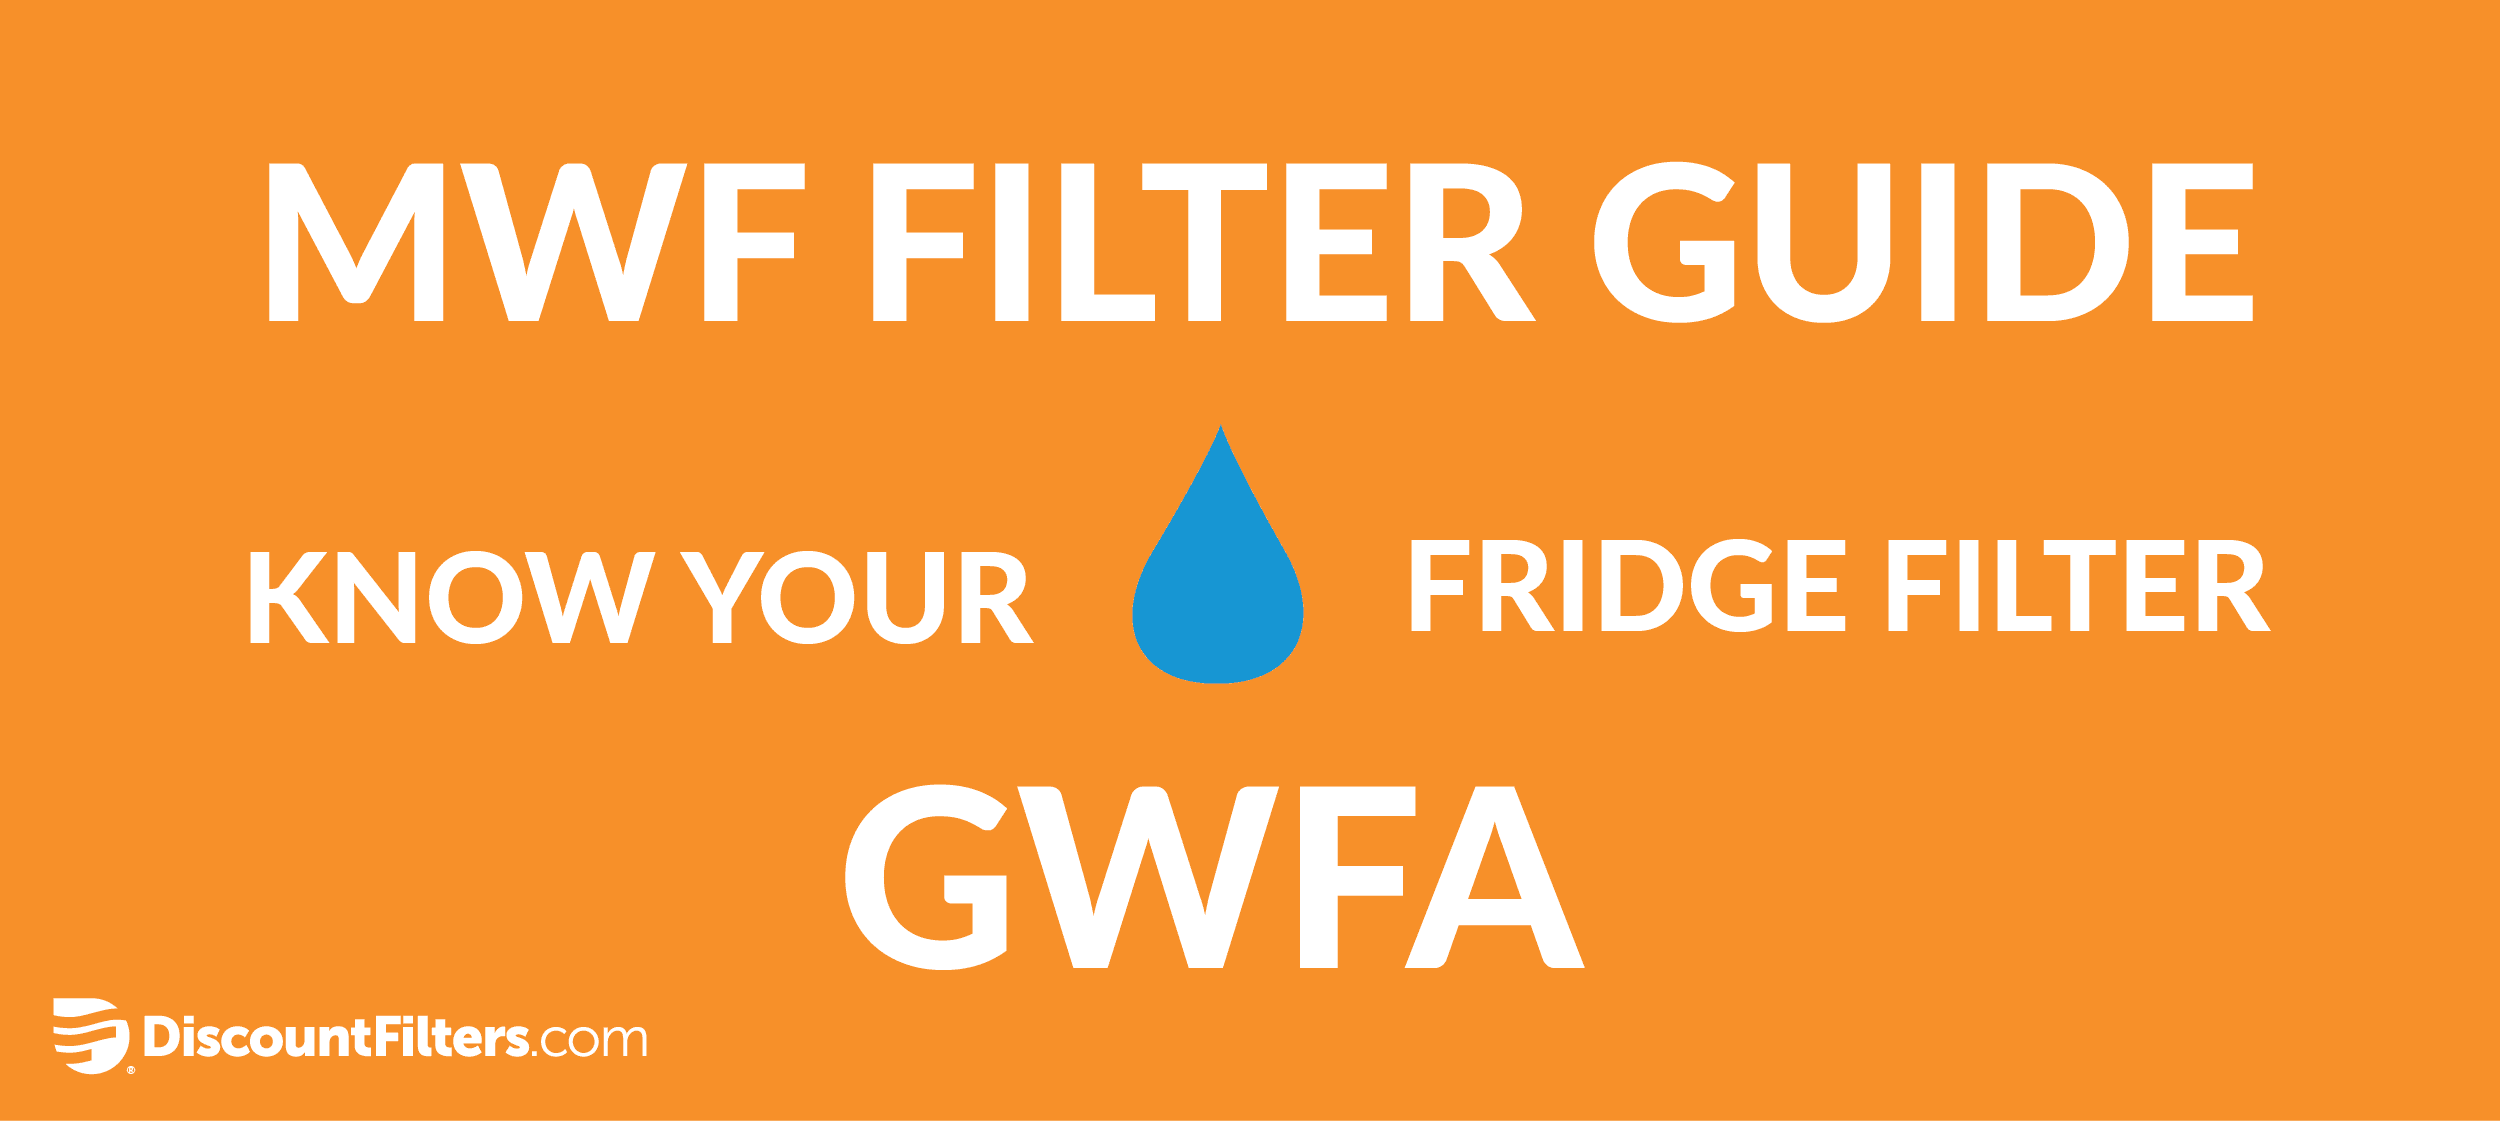 mwf replacement filter guide gwfa